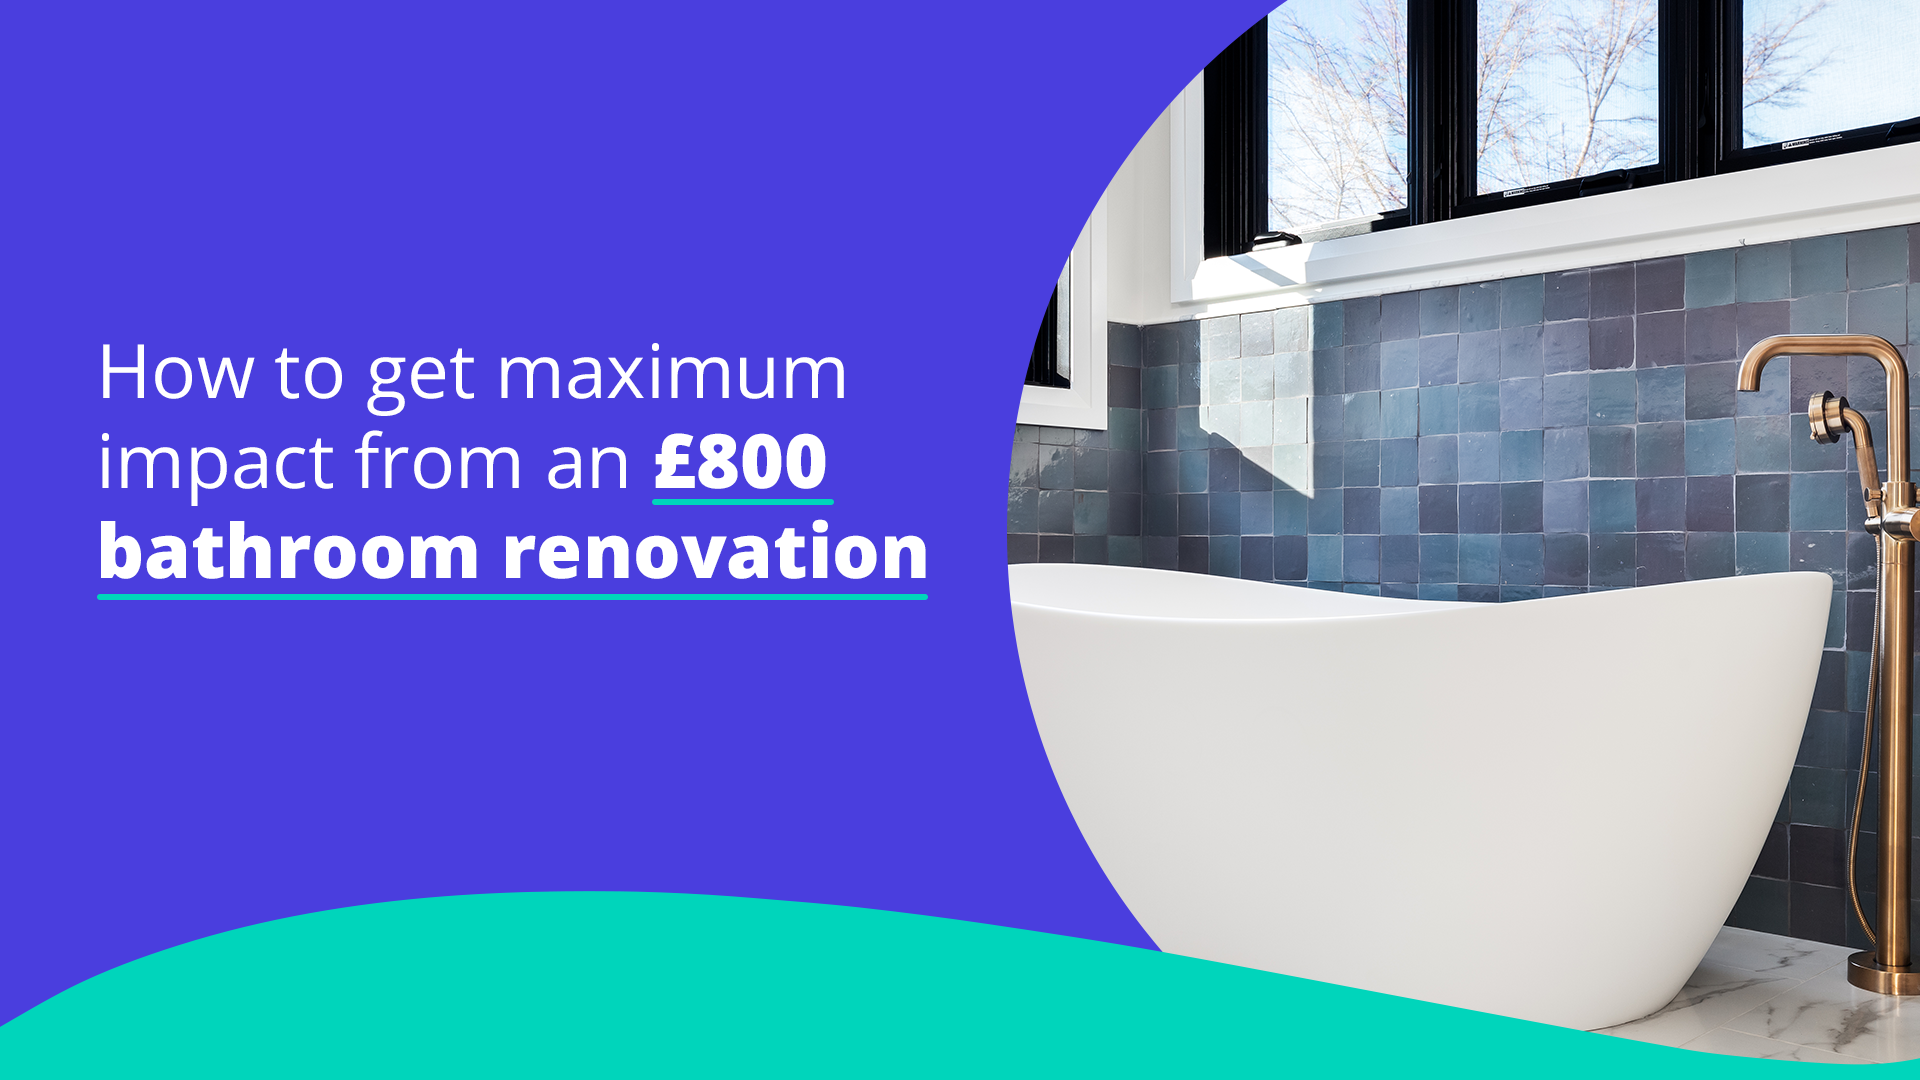 how-to-get-maximum-impact-from-an-gbp800-bathroom-renovation